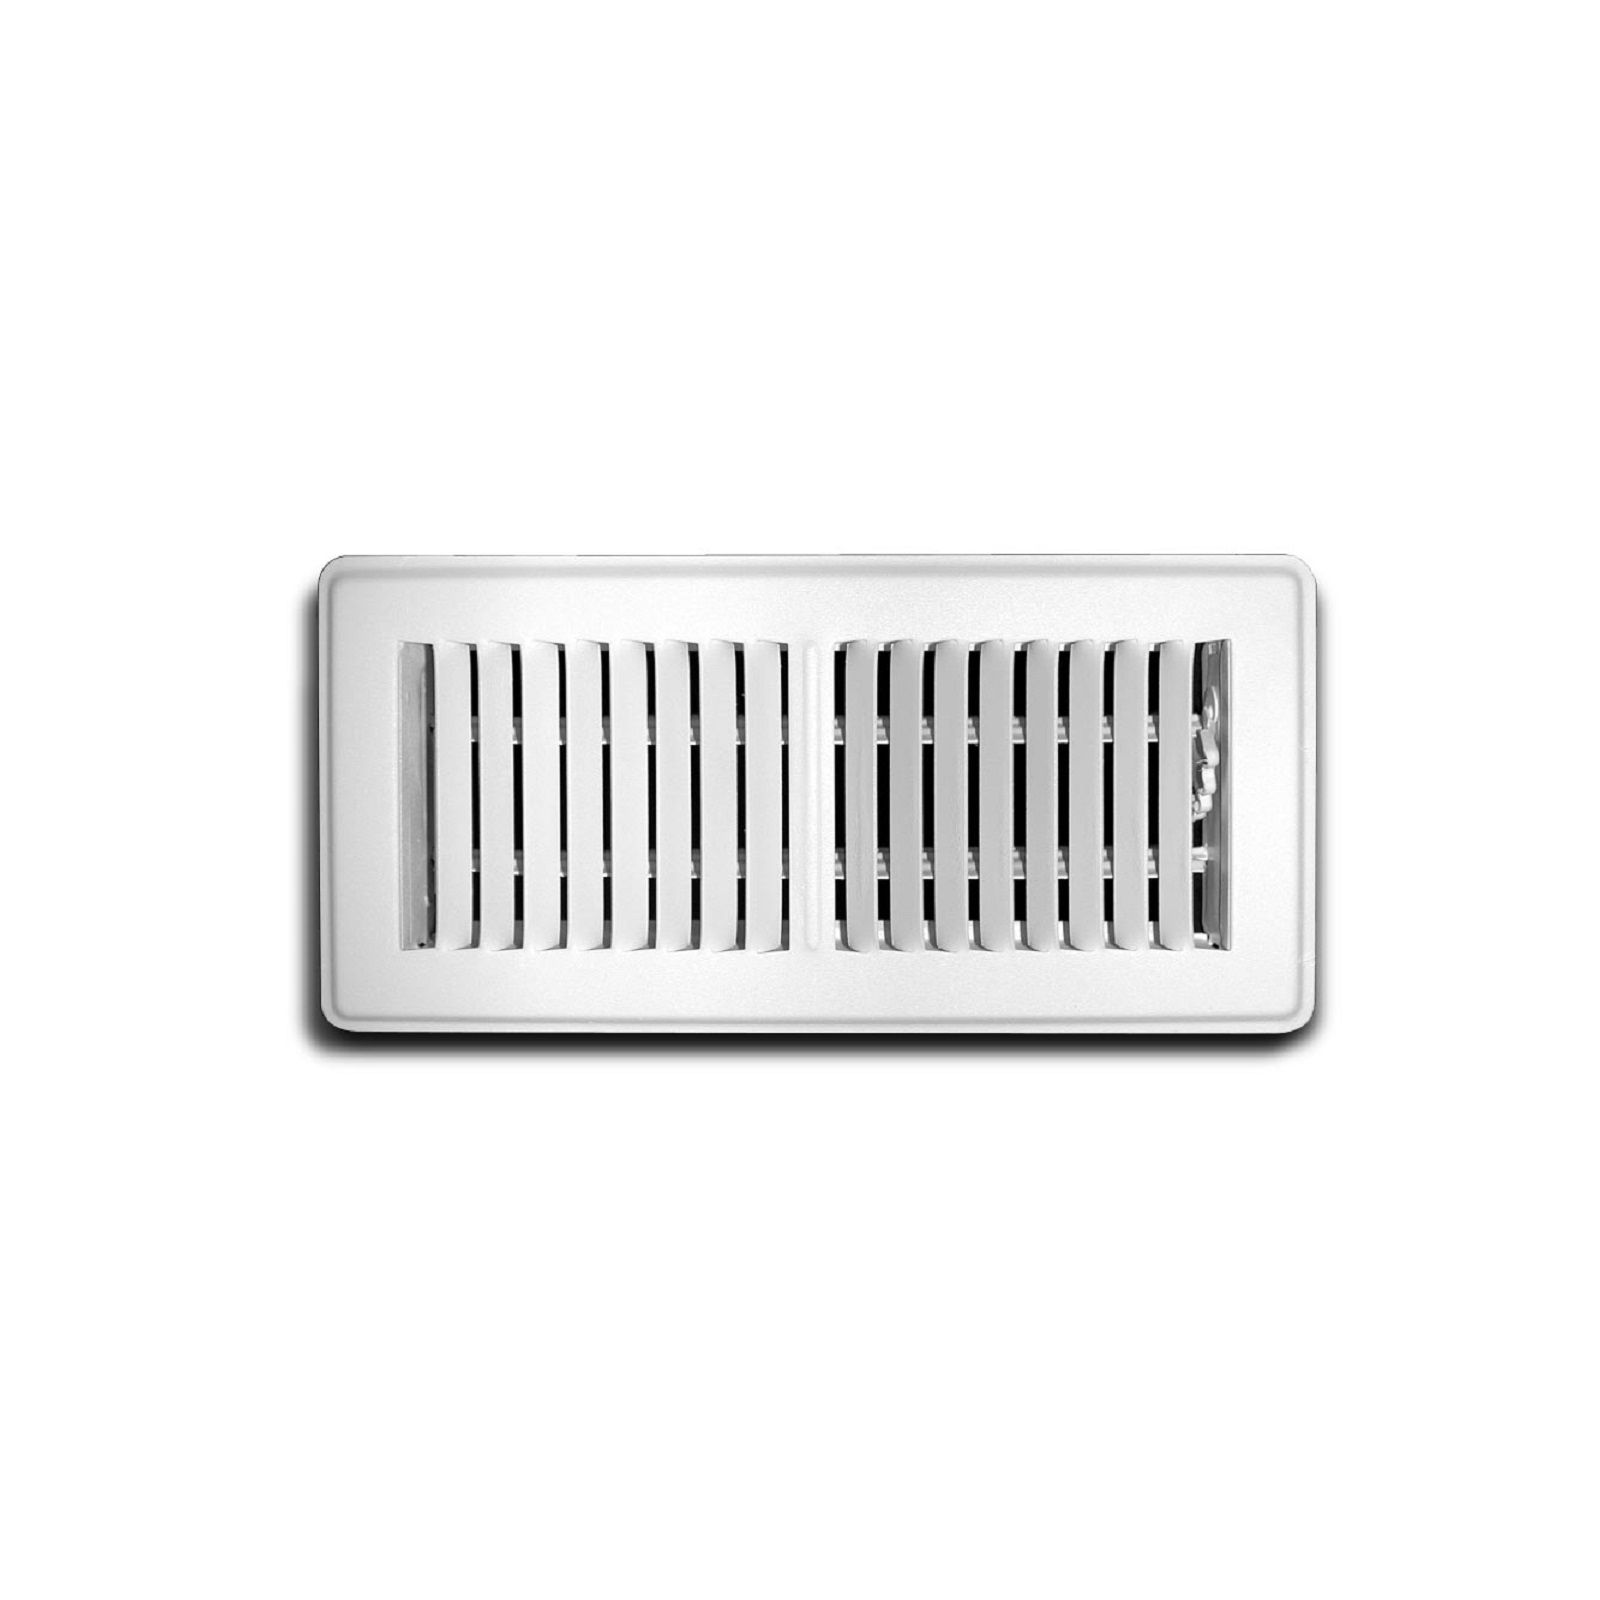 "TRUaire 150MW 04X14 - Steel Stamped Face Floor Diffuser, White, 04"" X 14"""